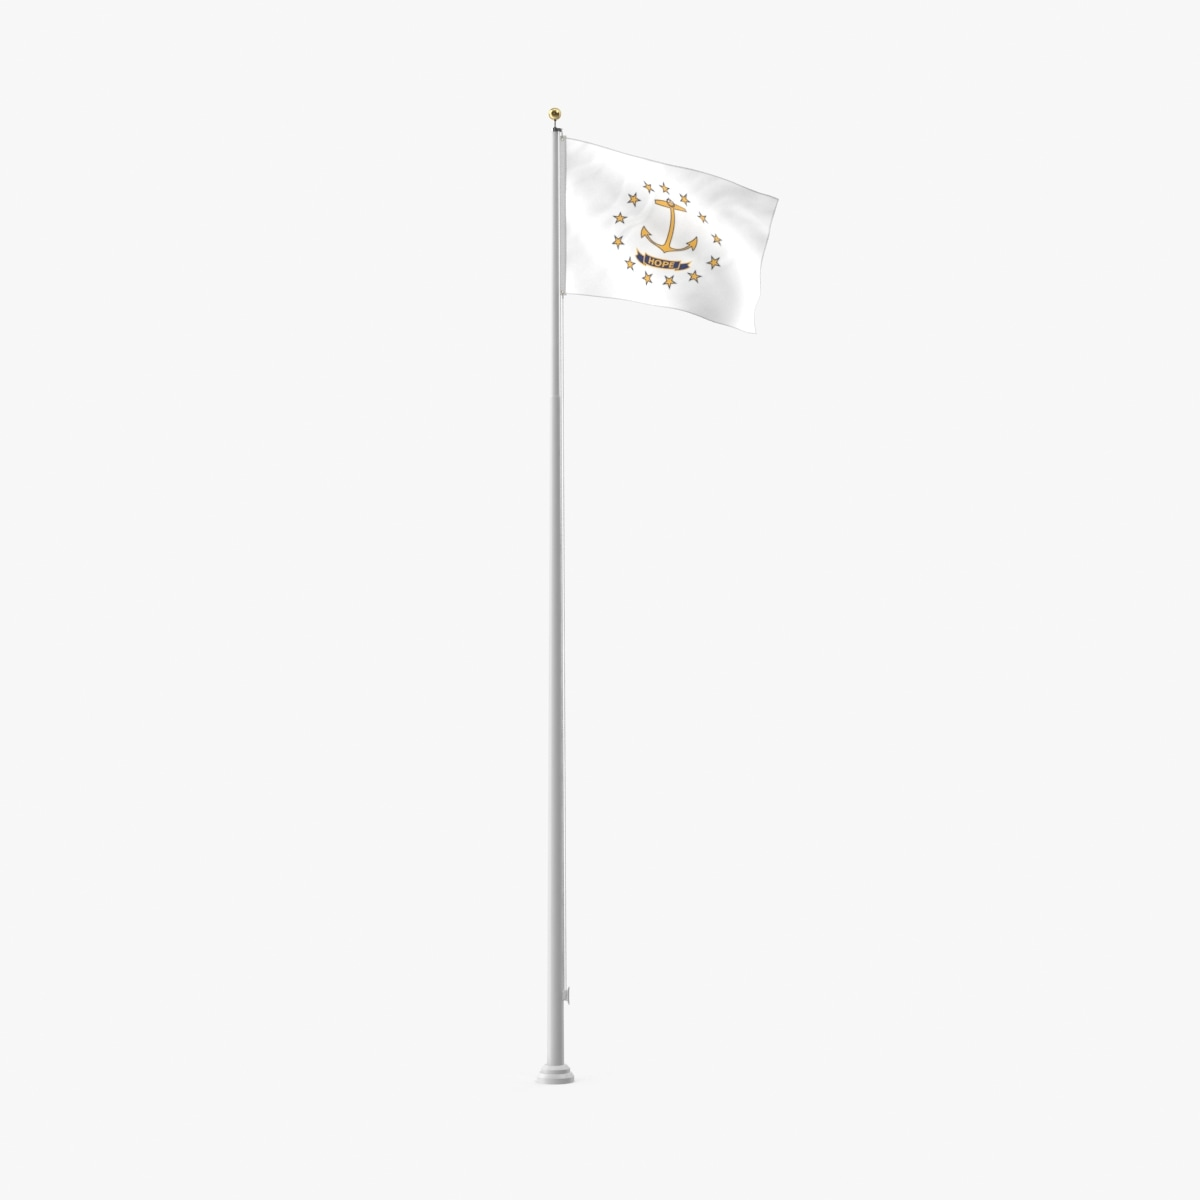 3D state-flags---rhode-island model